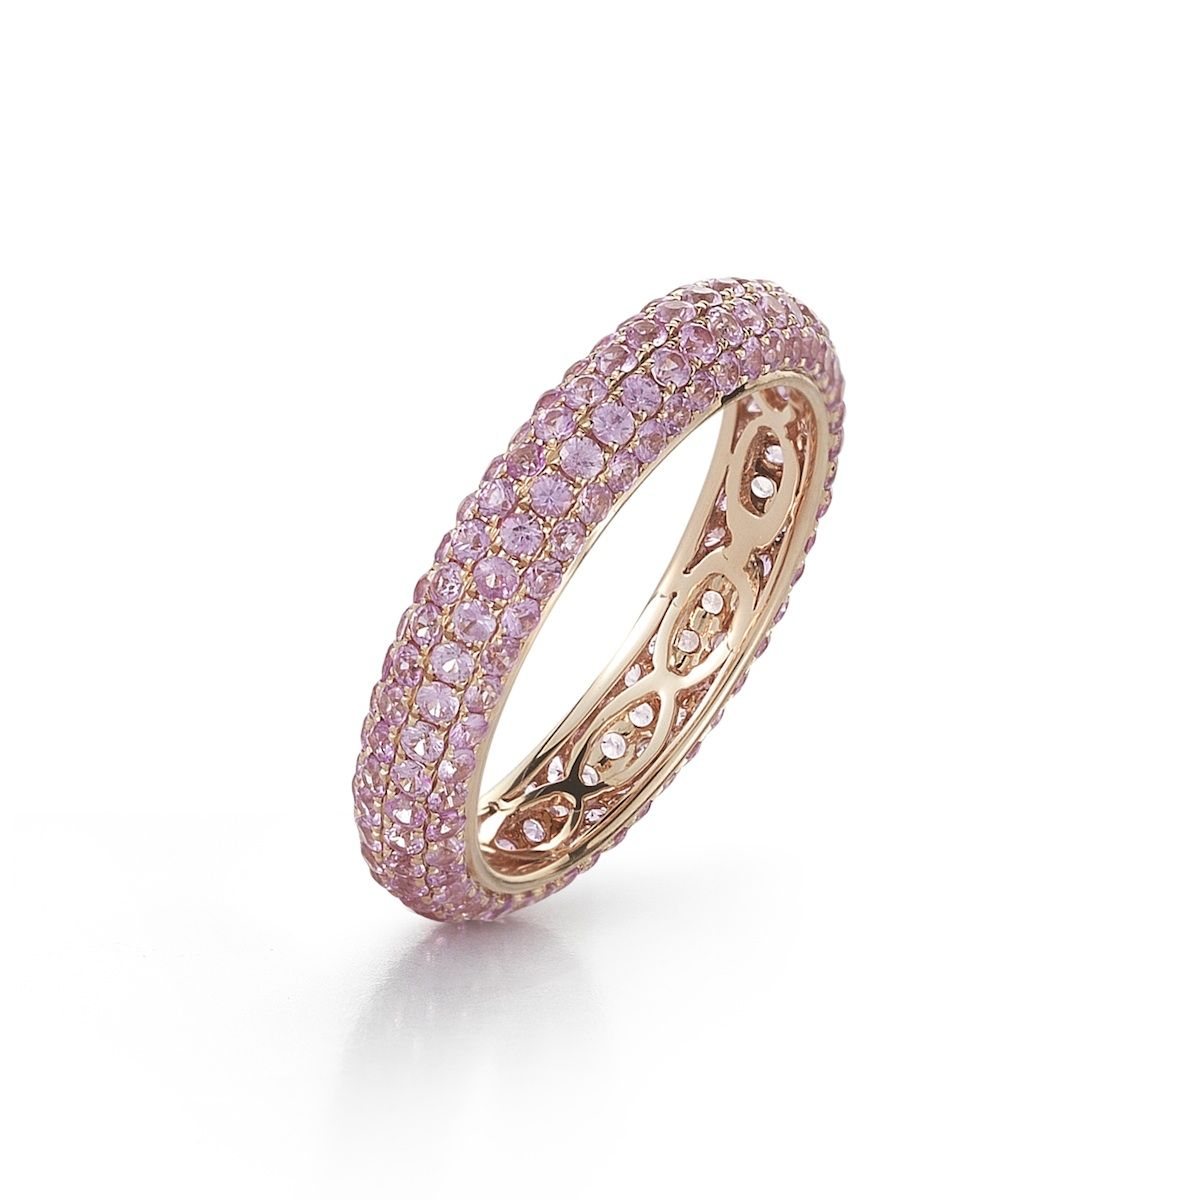 Melissa Louise ring is 14K rose gold with pink sapphires by Dana Rebecca